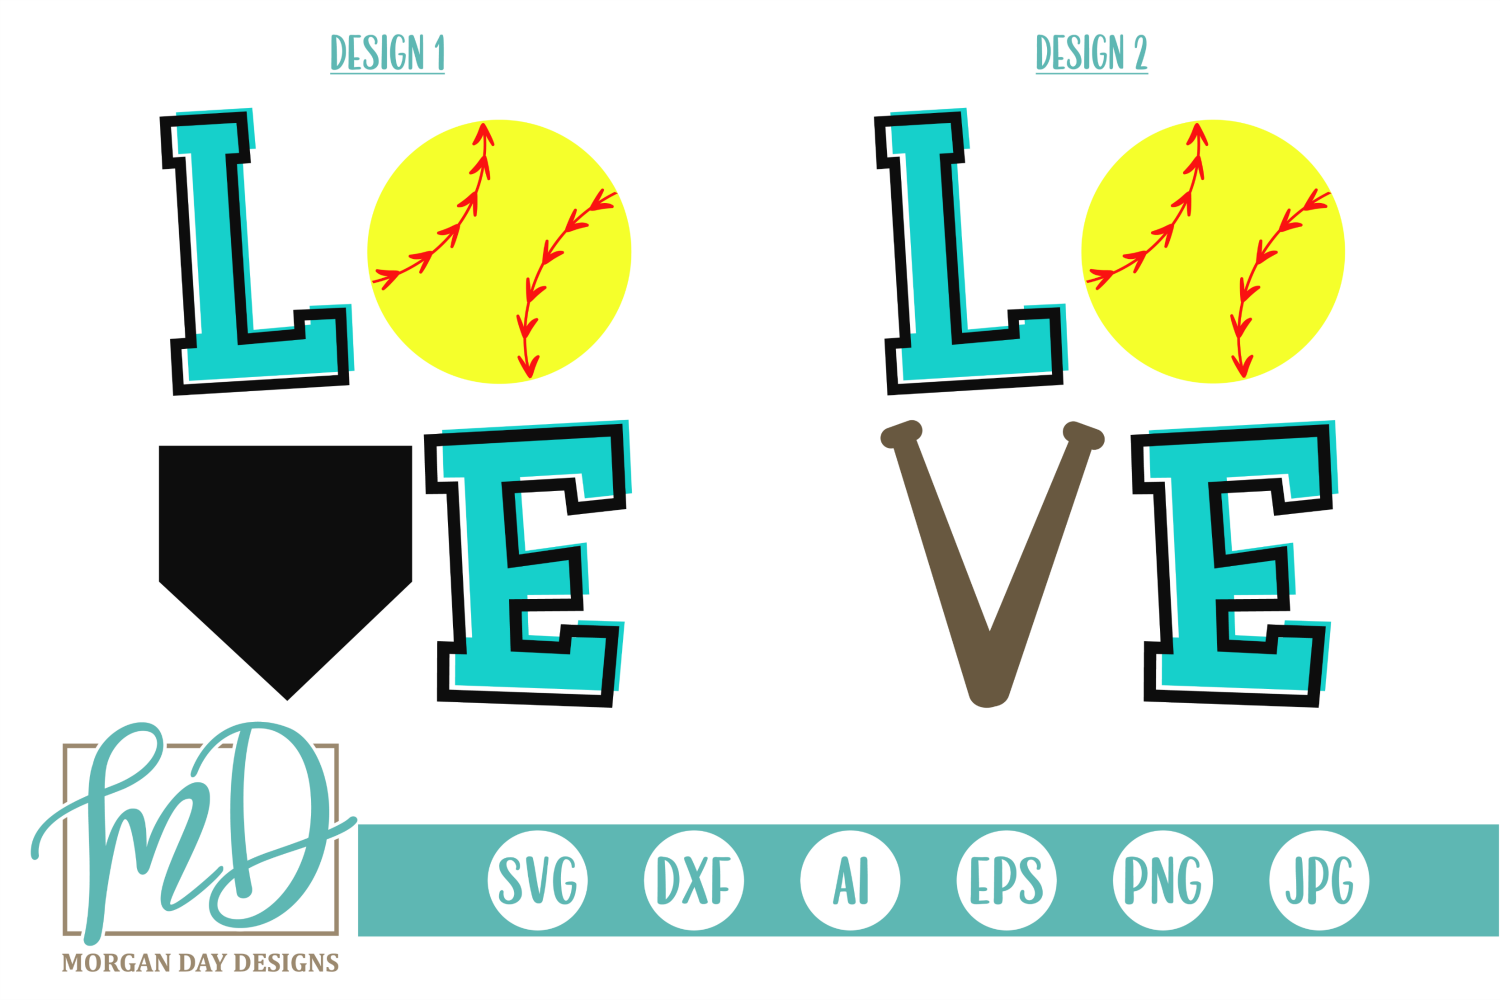 Softball Love - Love Softball SVG, DXF, AI, EPS, PNG, JPEG example image 1